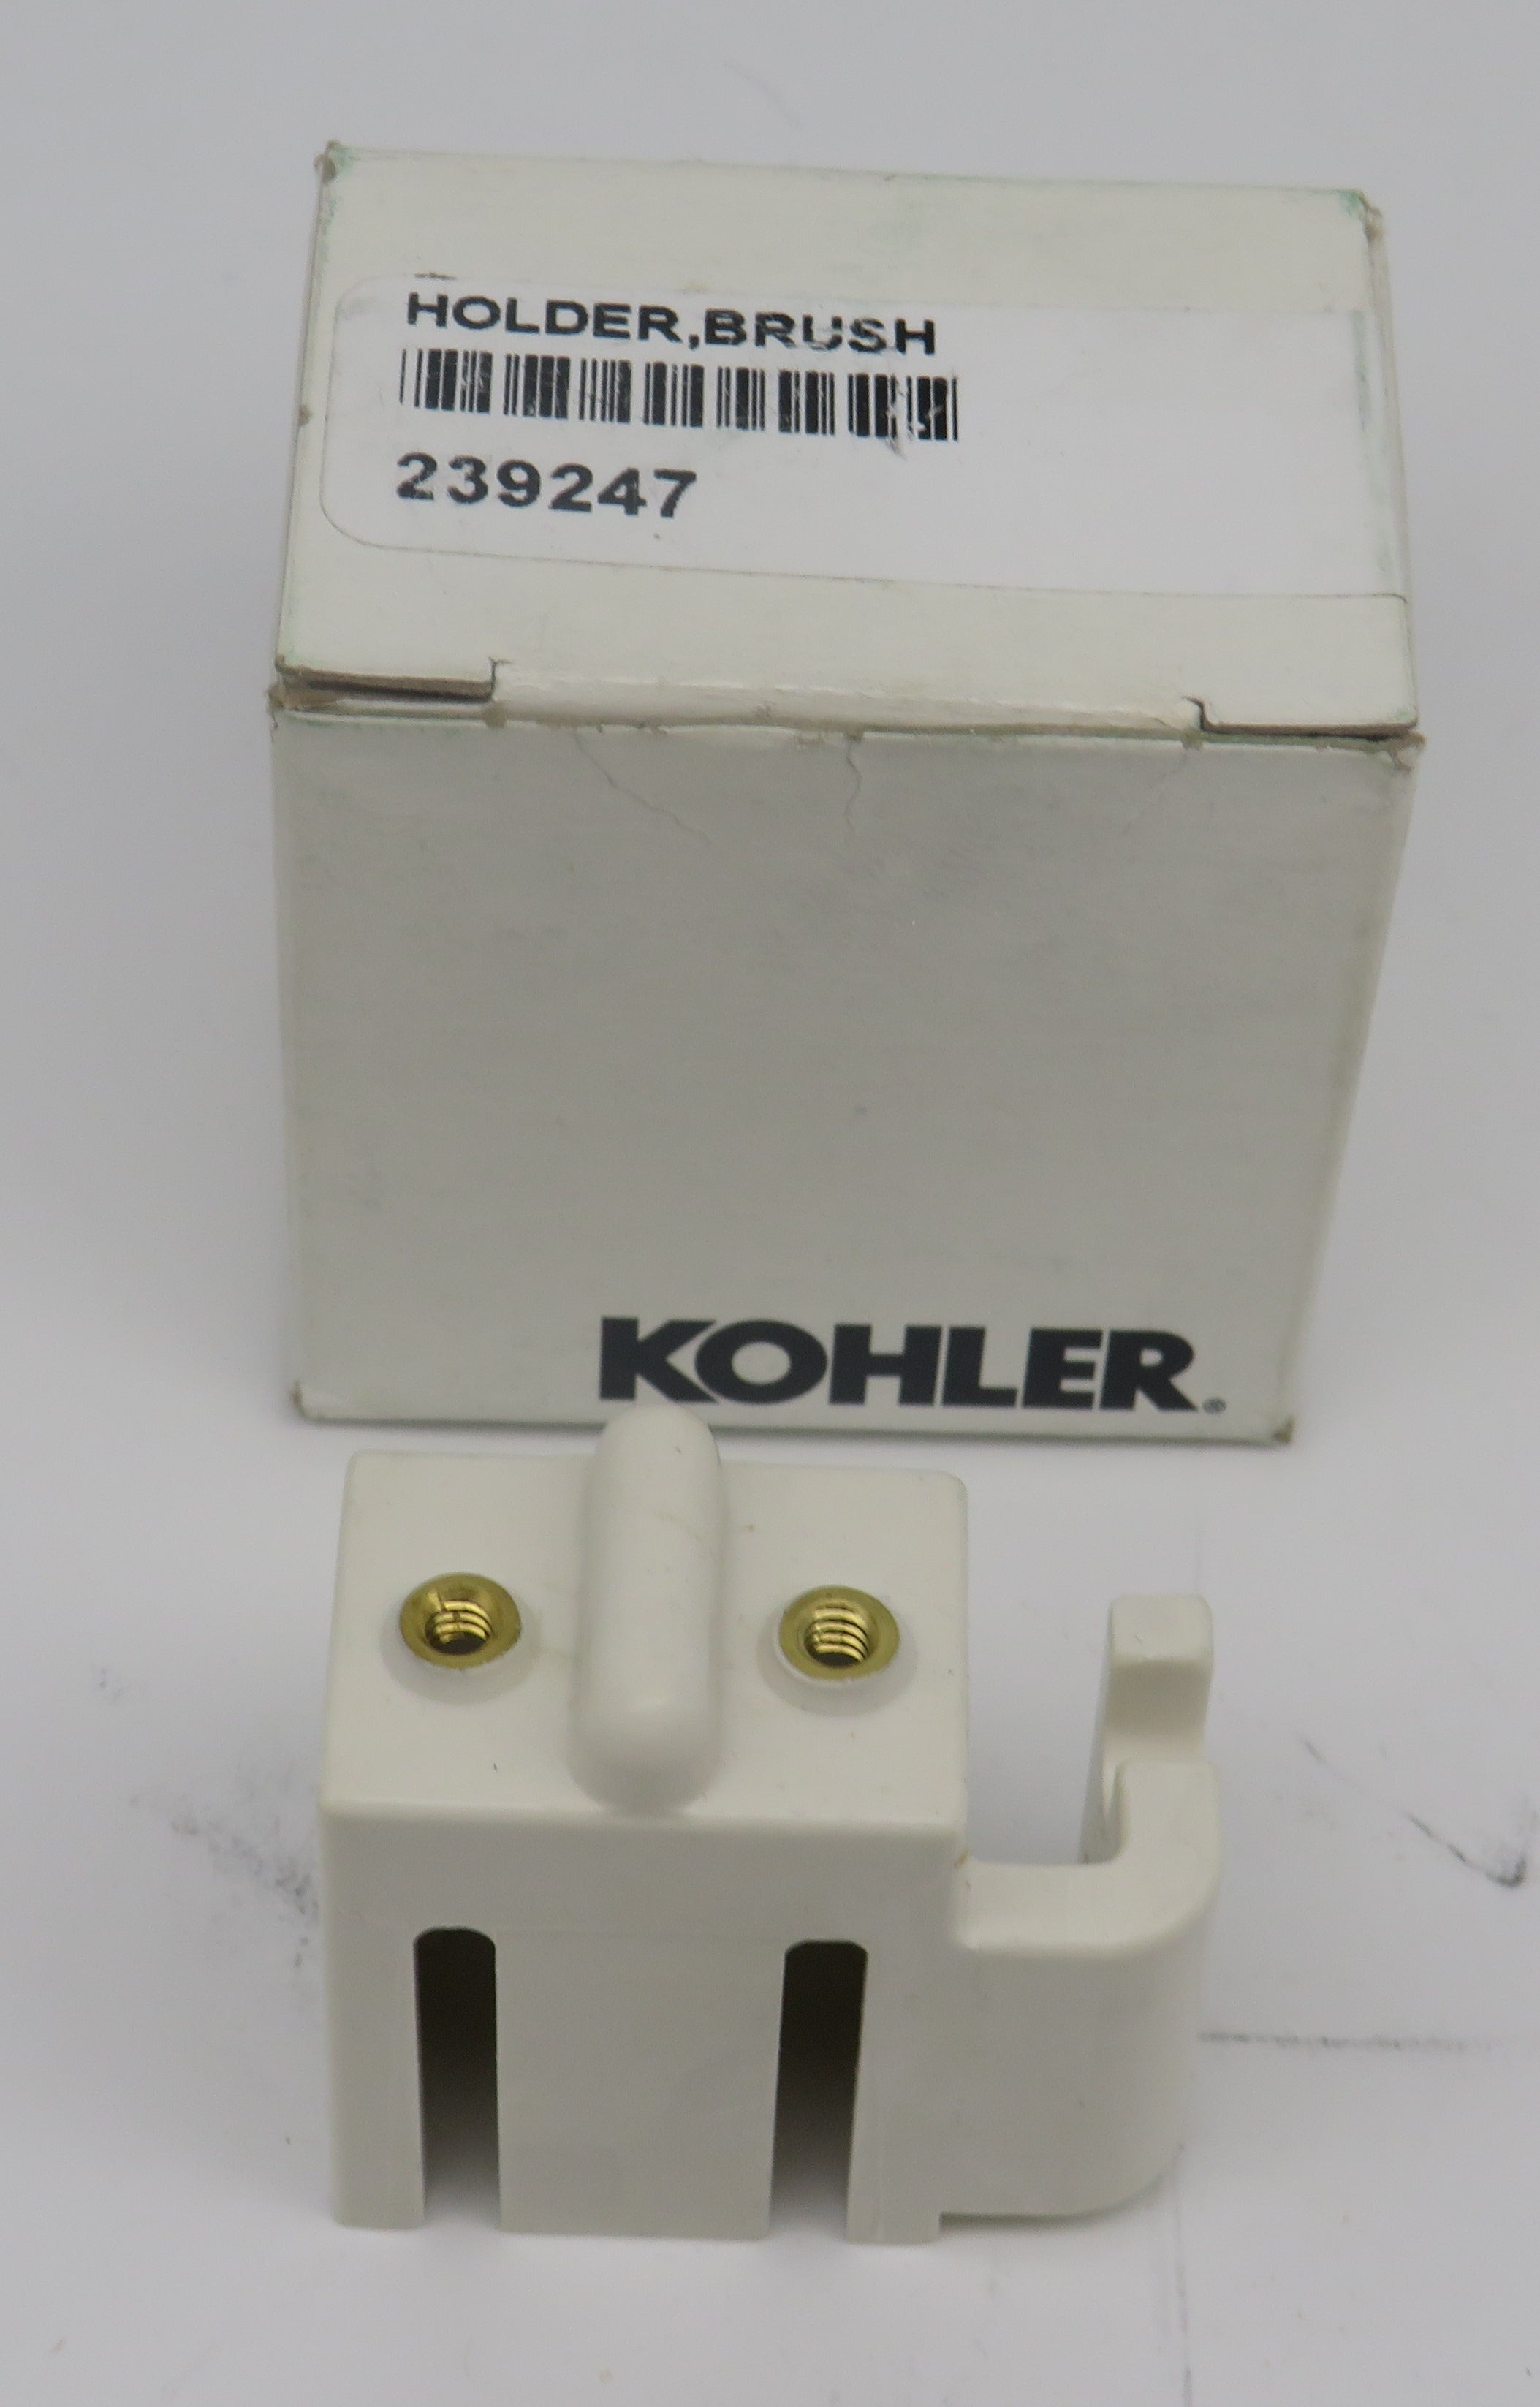 239247 Kohler Brush Holder